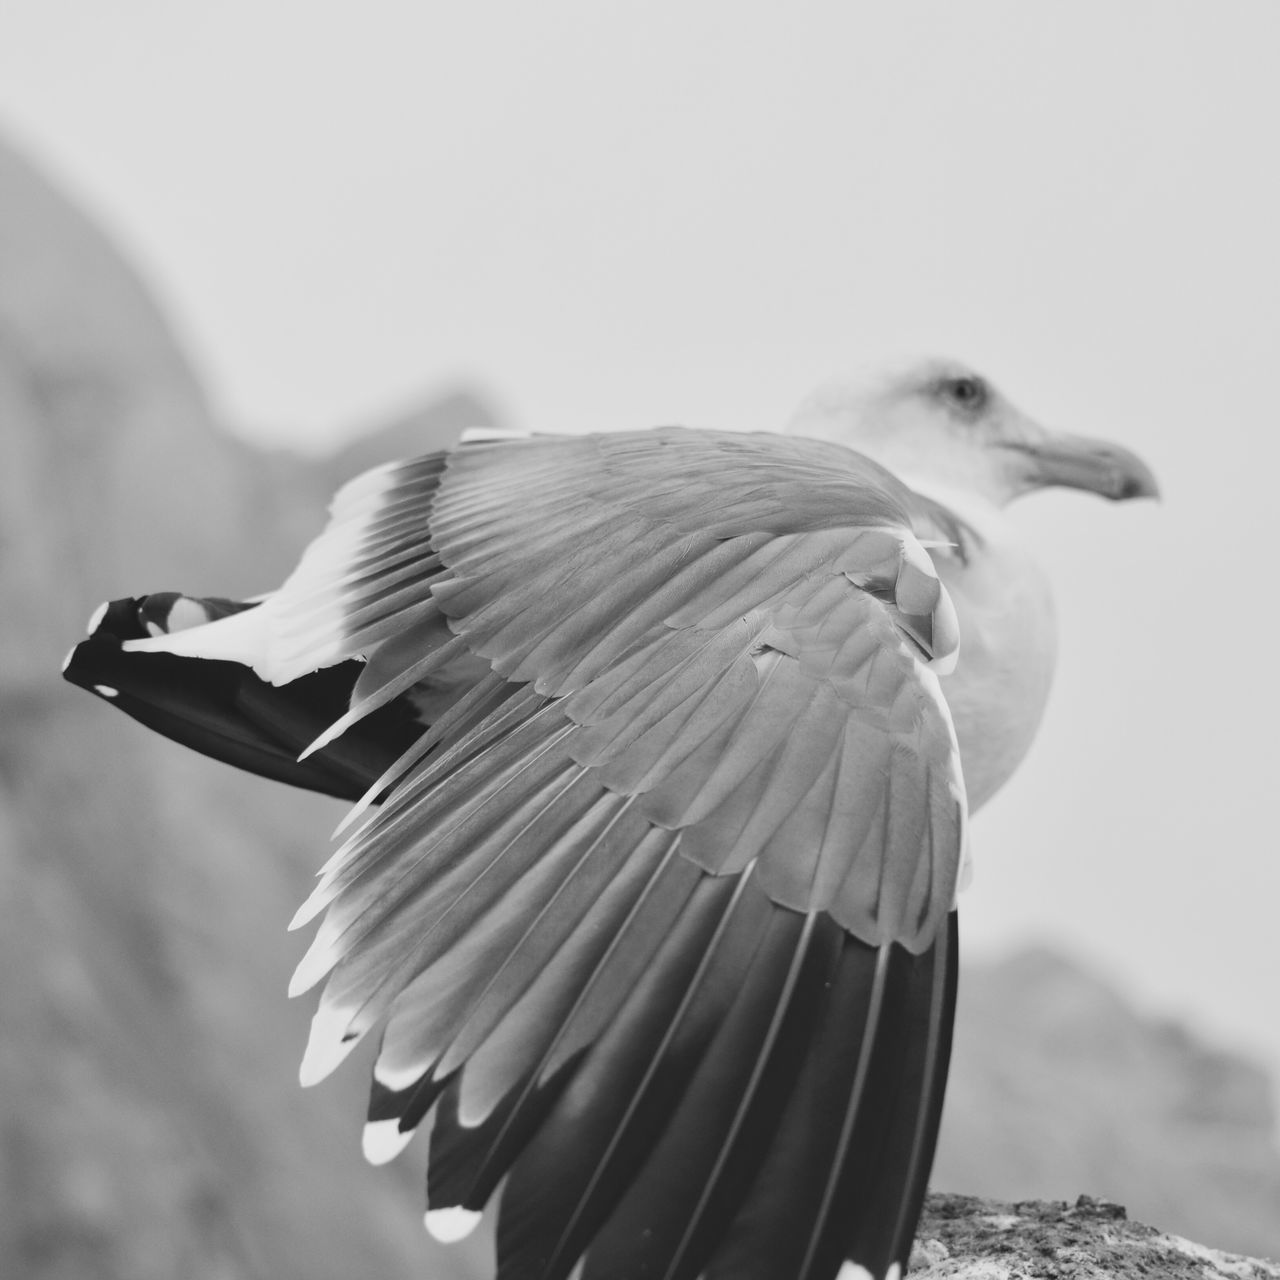 alFREED H. Beauty In Nature Hello World California Looking At Camera Bird Blackandwhite EyeEm Gallery Nature No People EyeEm Nature Lover Close-up Check This Out Birds_collection EyeEm Animals Calm EyeEm Best Shots California Coast Birds Black And White Black & White Wildlife & Nature Travel Destinations Outdoors Bird Photography